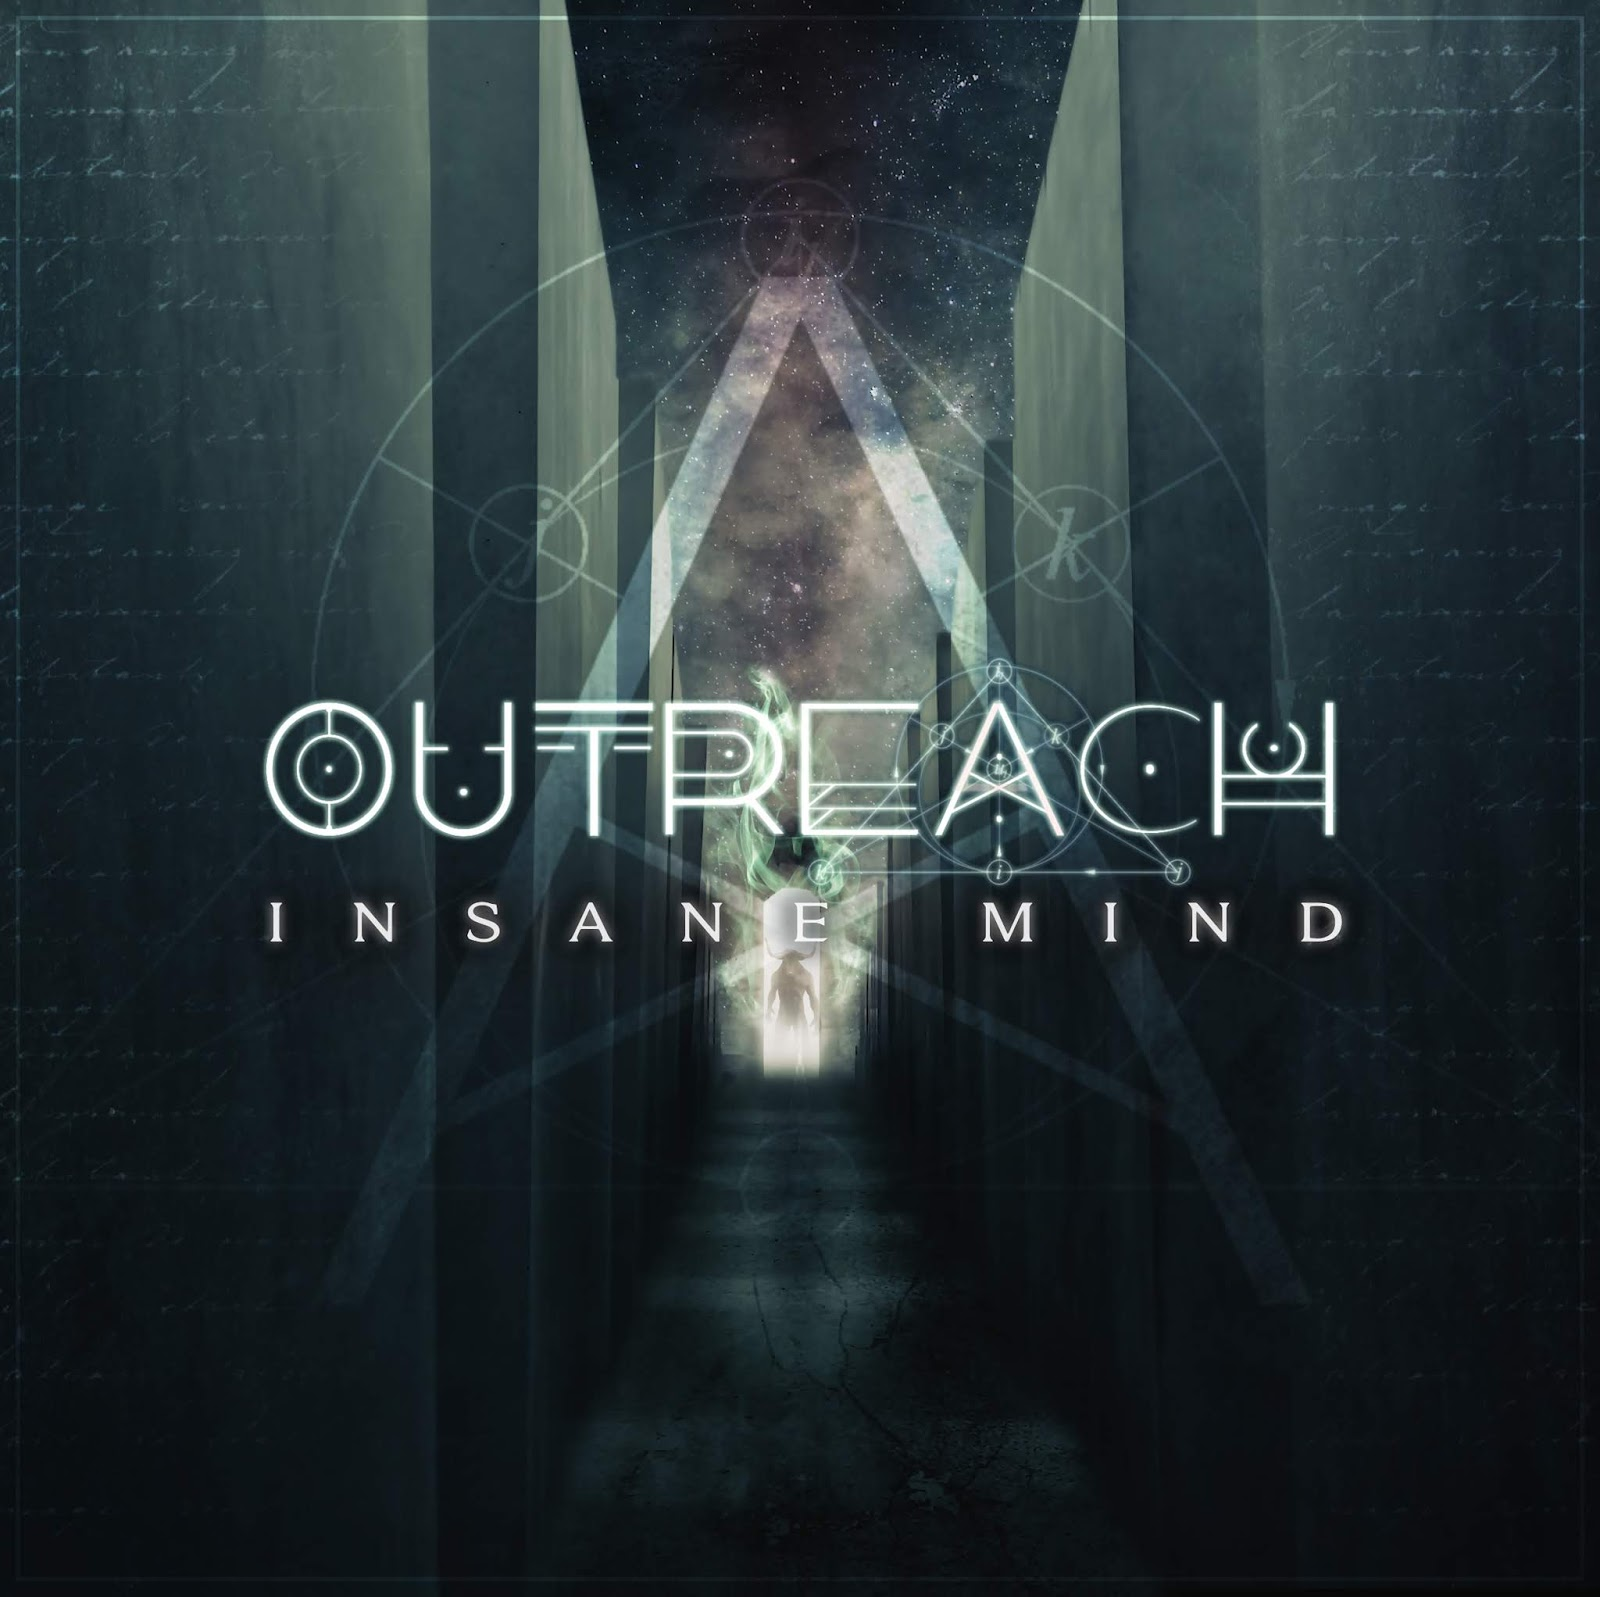 Outreach Insane Mind